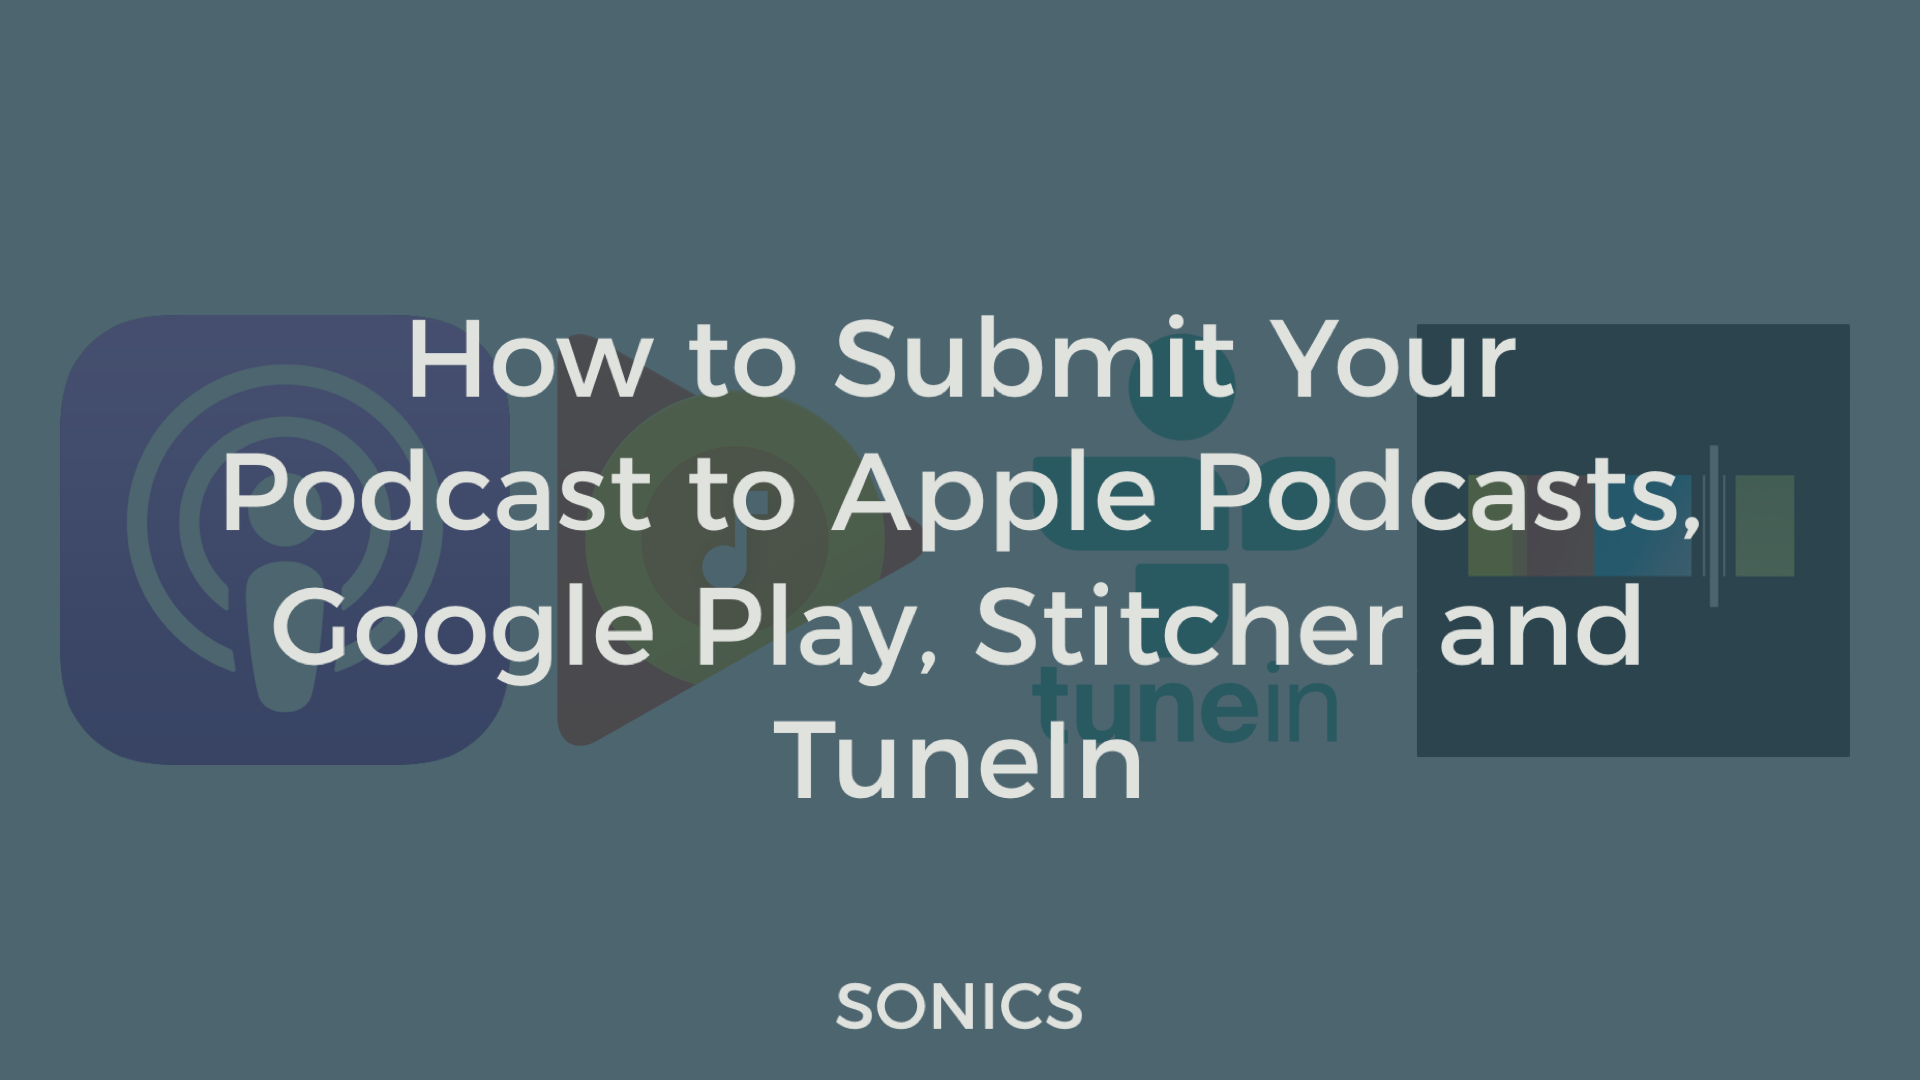 How to Submit Your Podcast to Apple Podcasts, Google Play